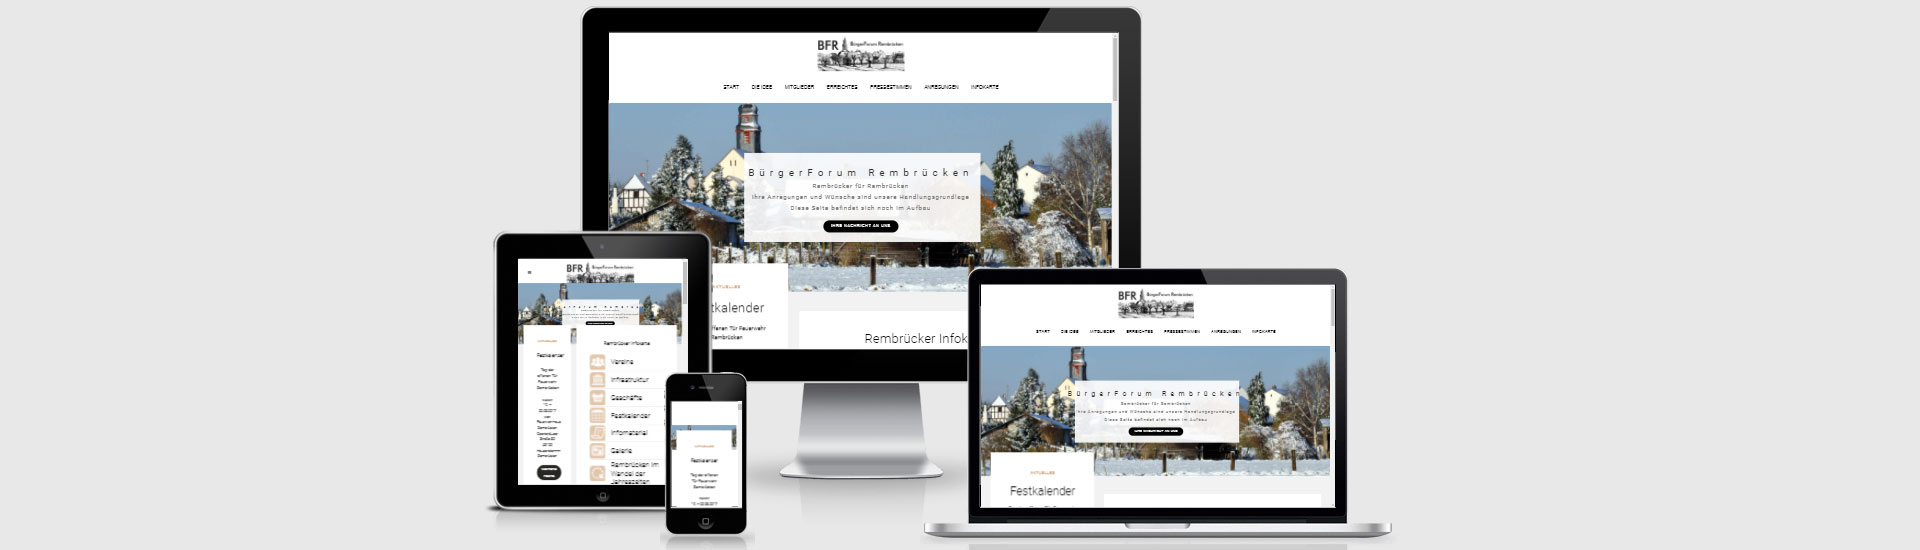 webdesign heusenstamm burgerforum header01 min